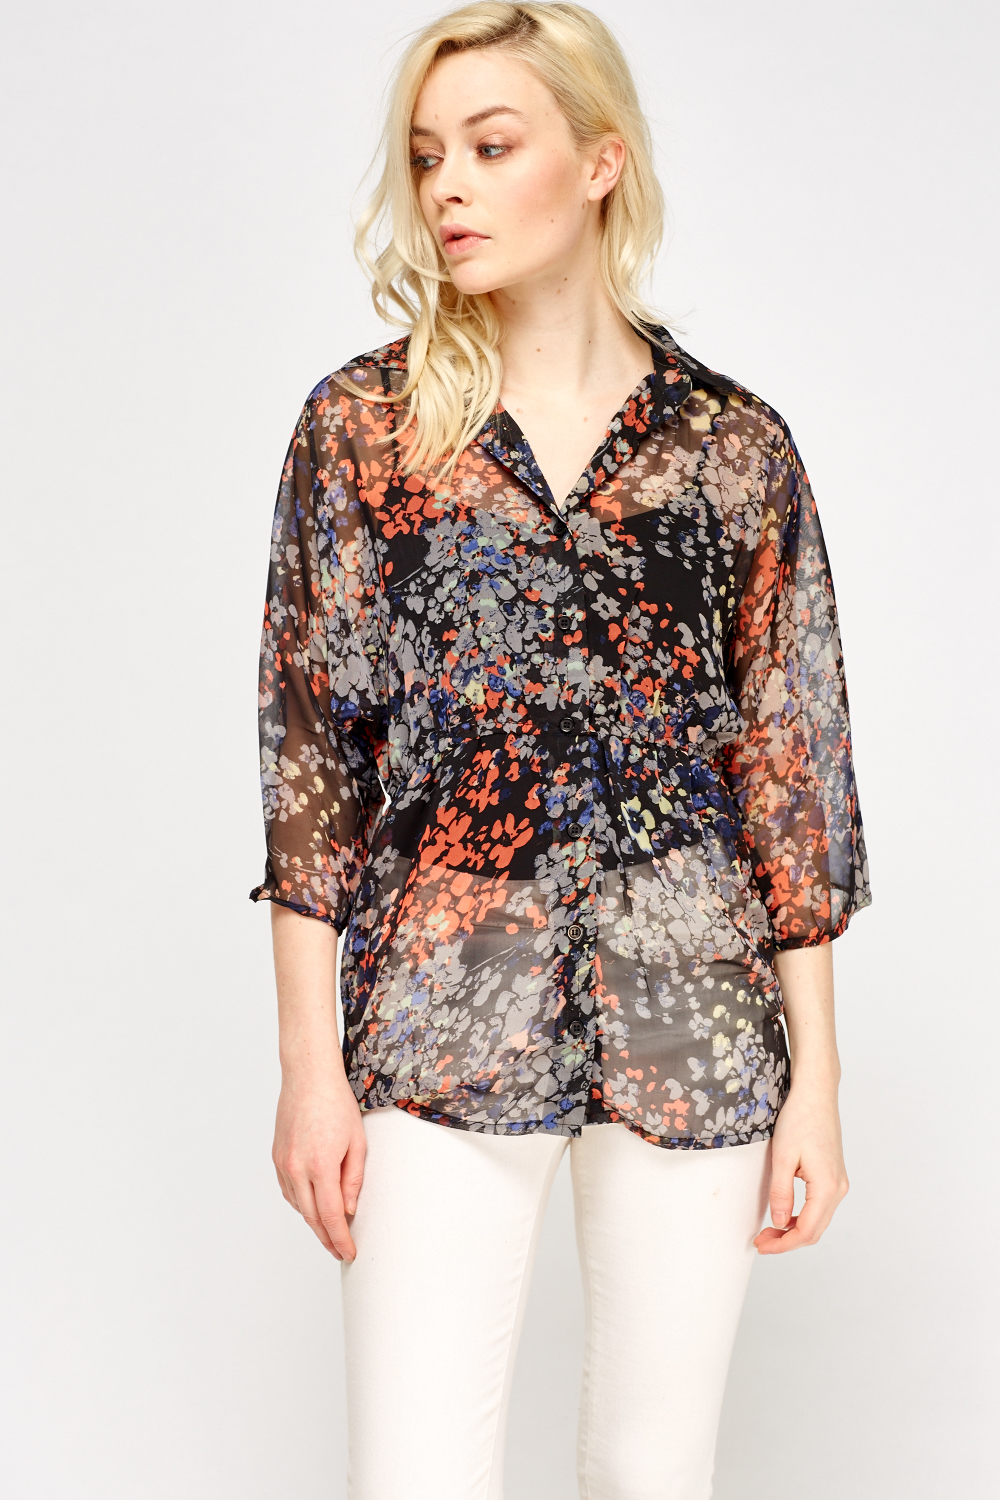 ee8ea260 Button Front Sheer Printed Blouse - Black/Multi - Just £5